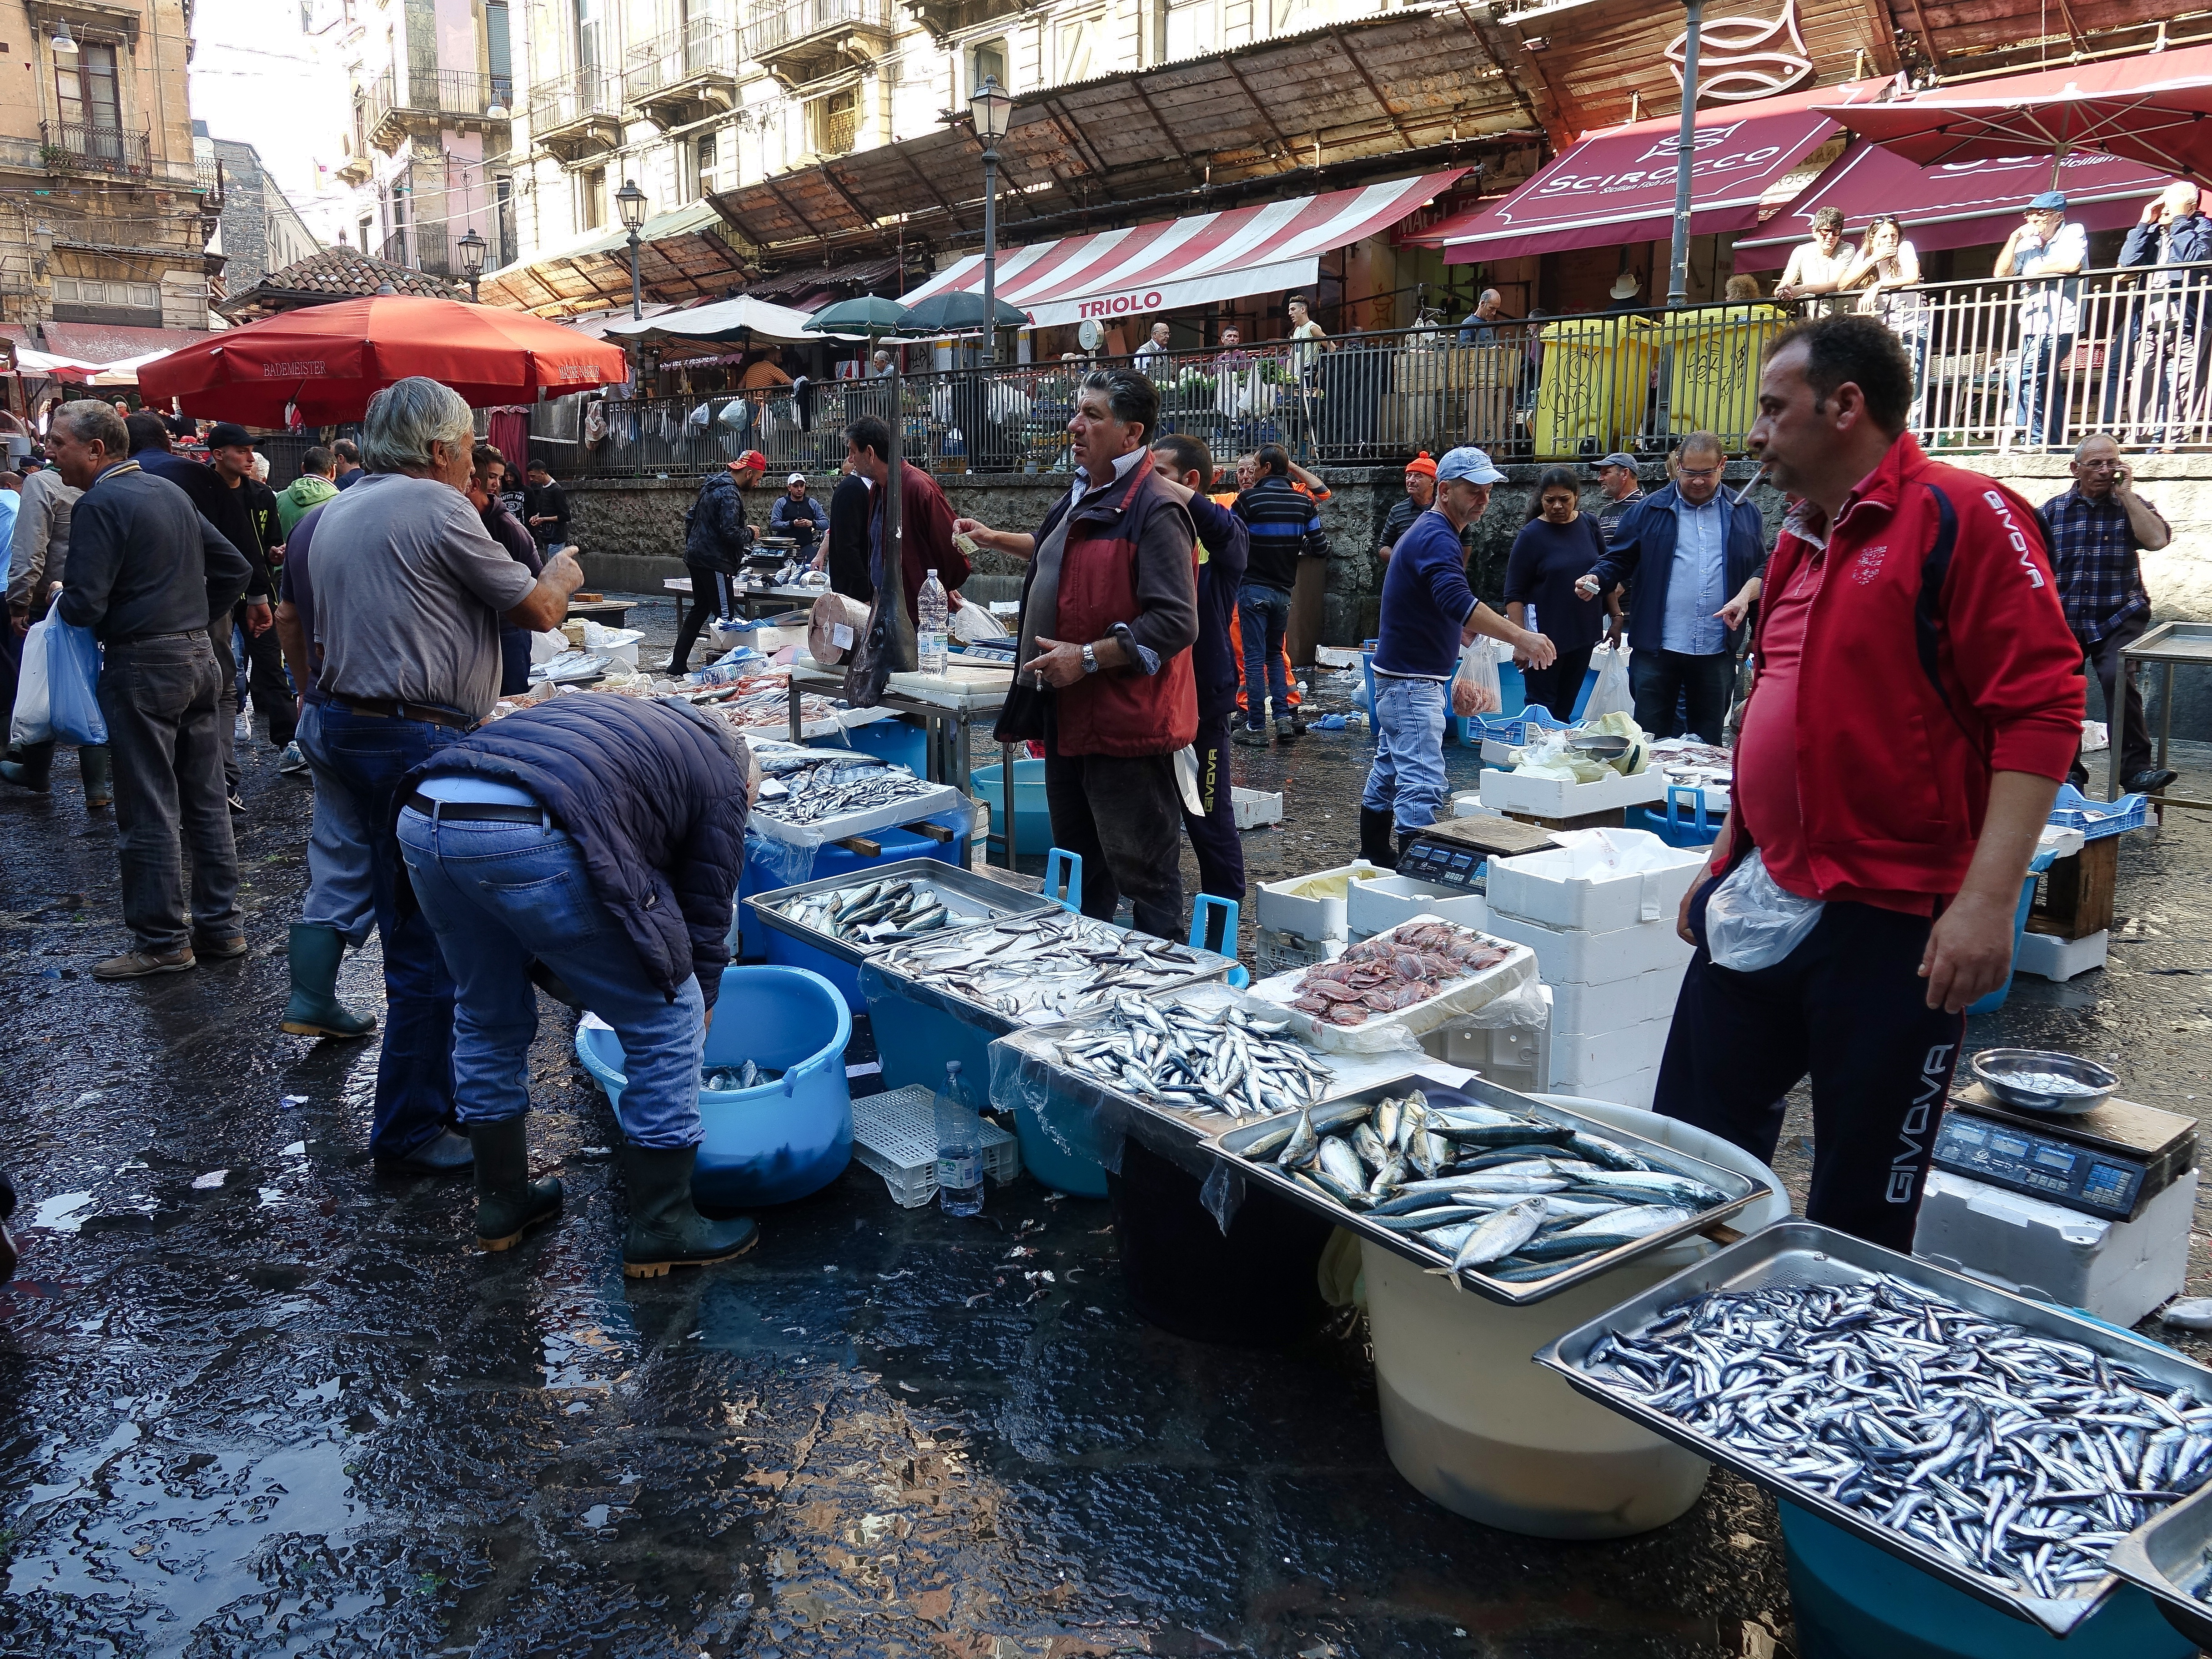 Sardines and anchovies were very popular and cheap